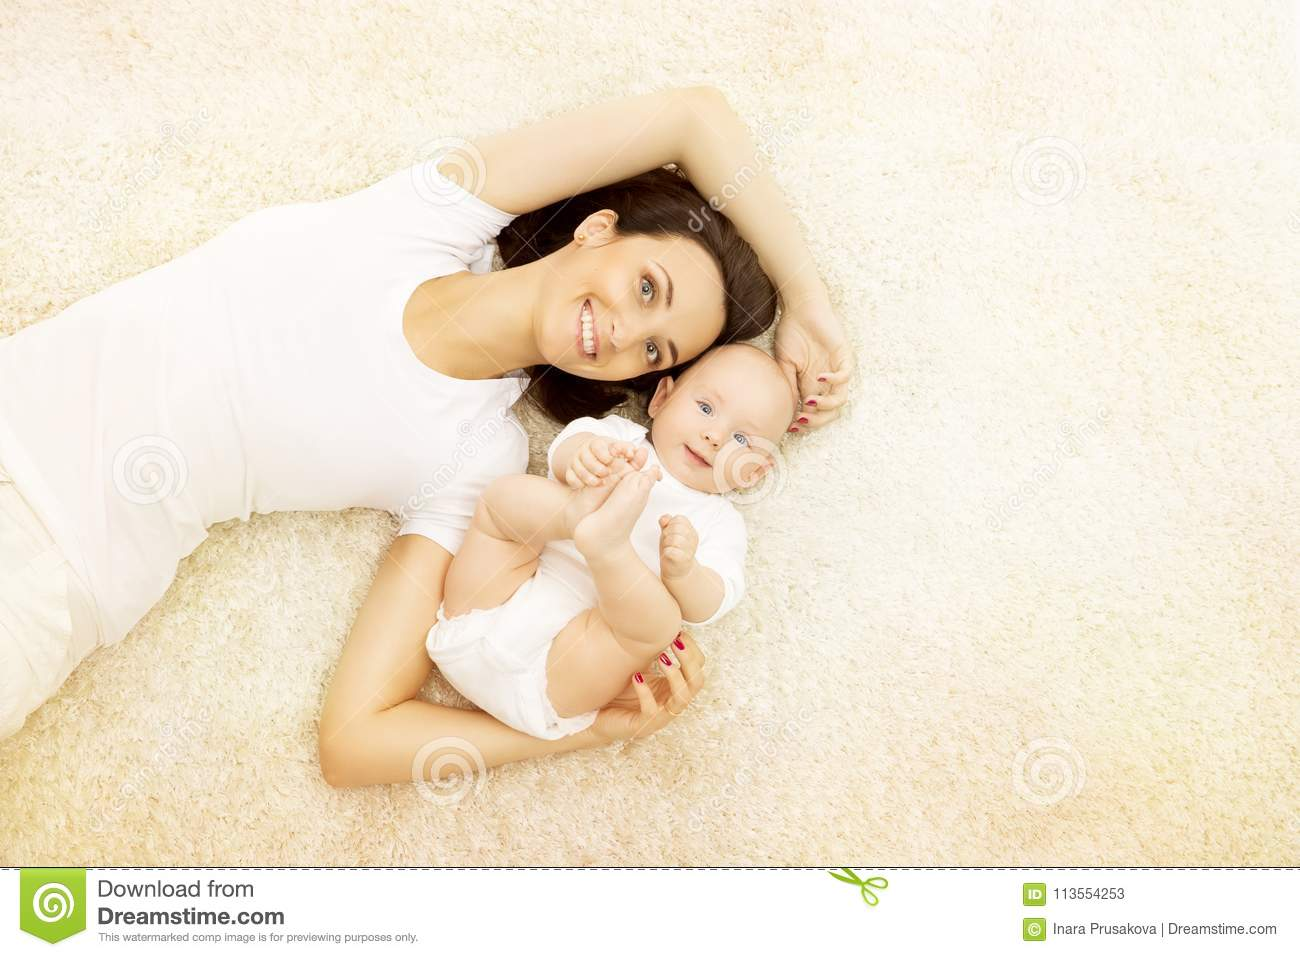 Mother and Baby, Happy Family Portrait, Mom with Kid on Carpet